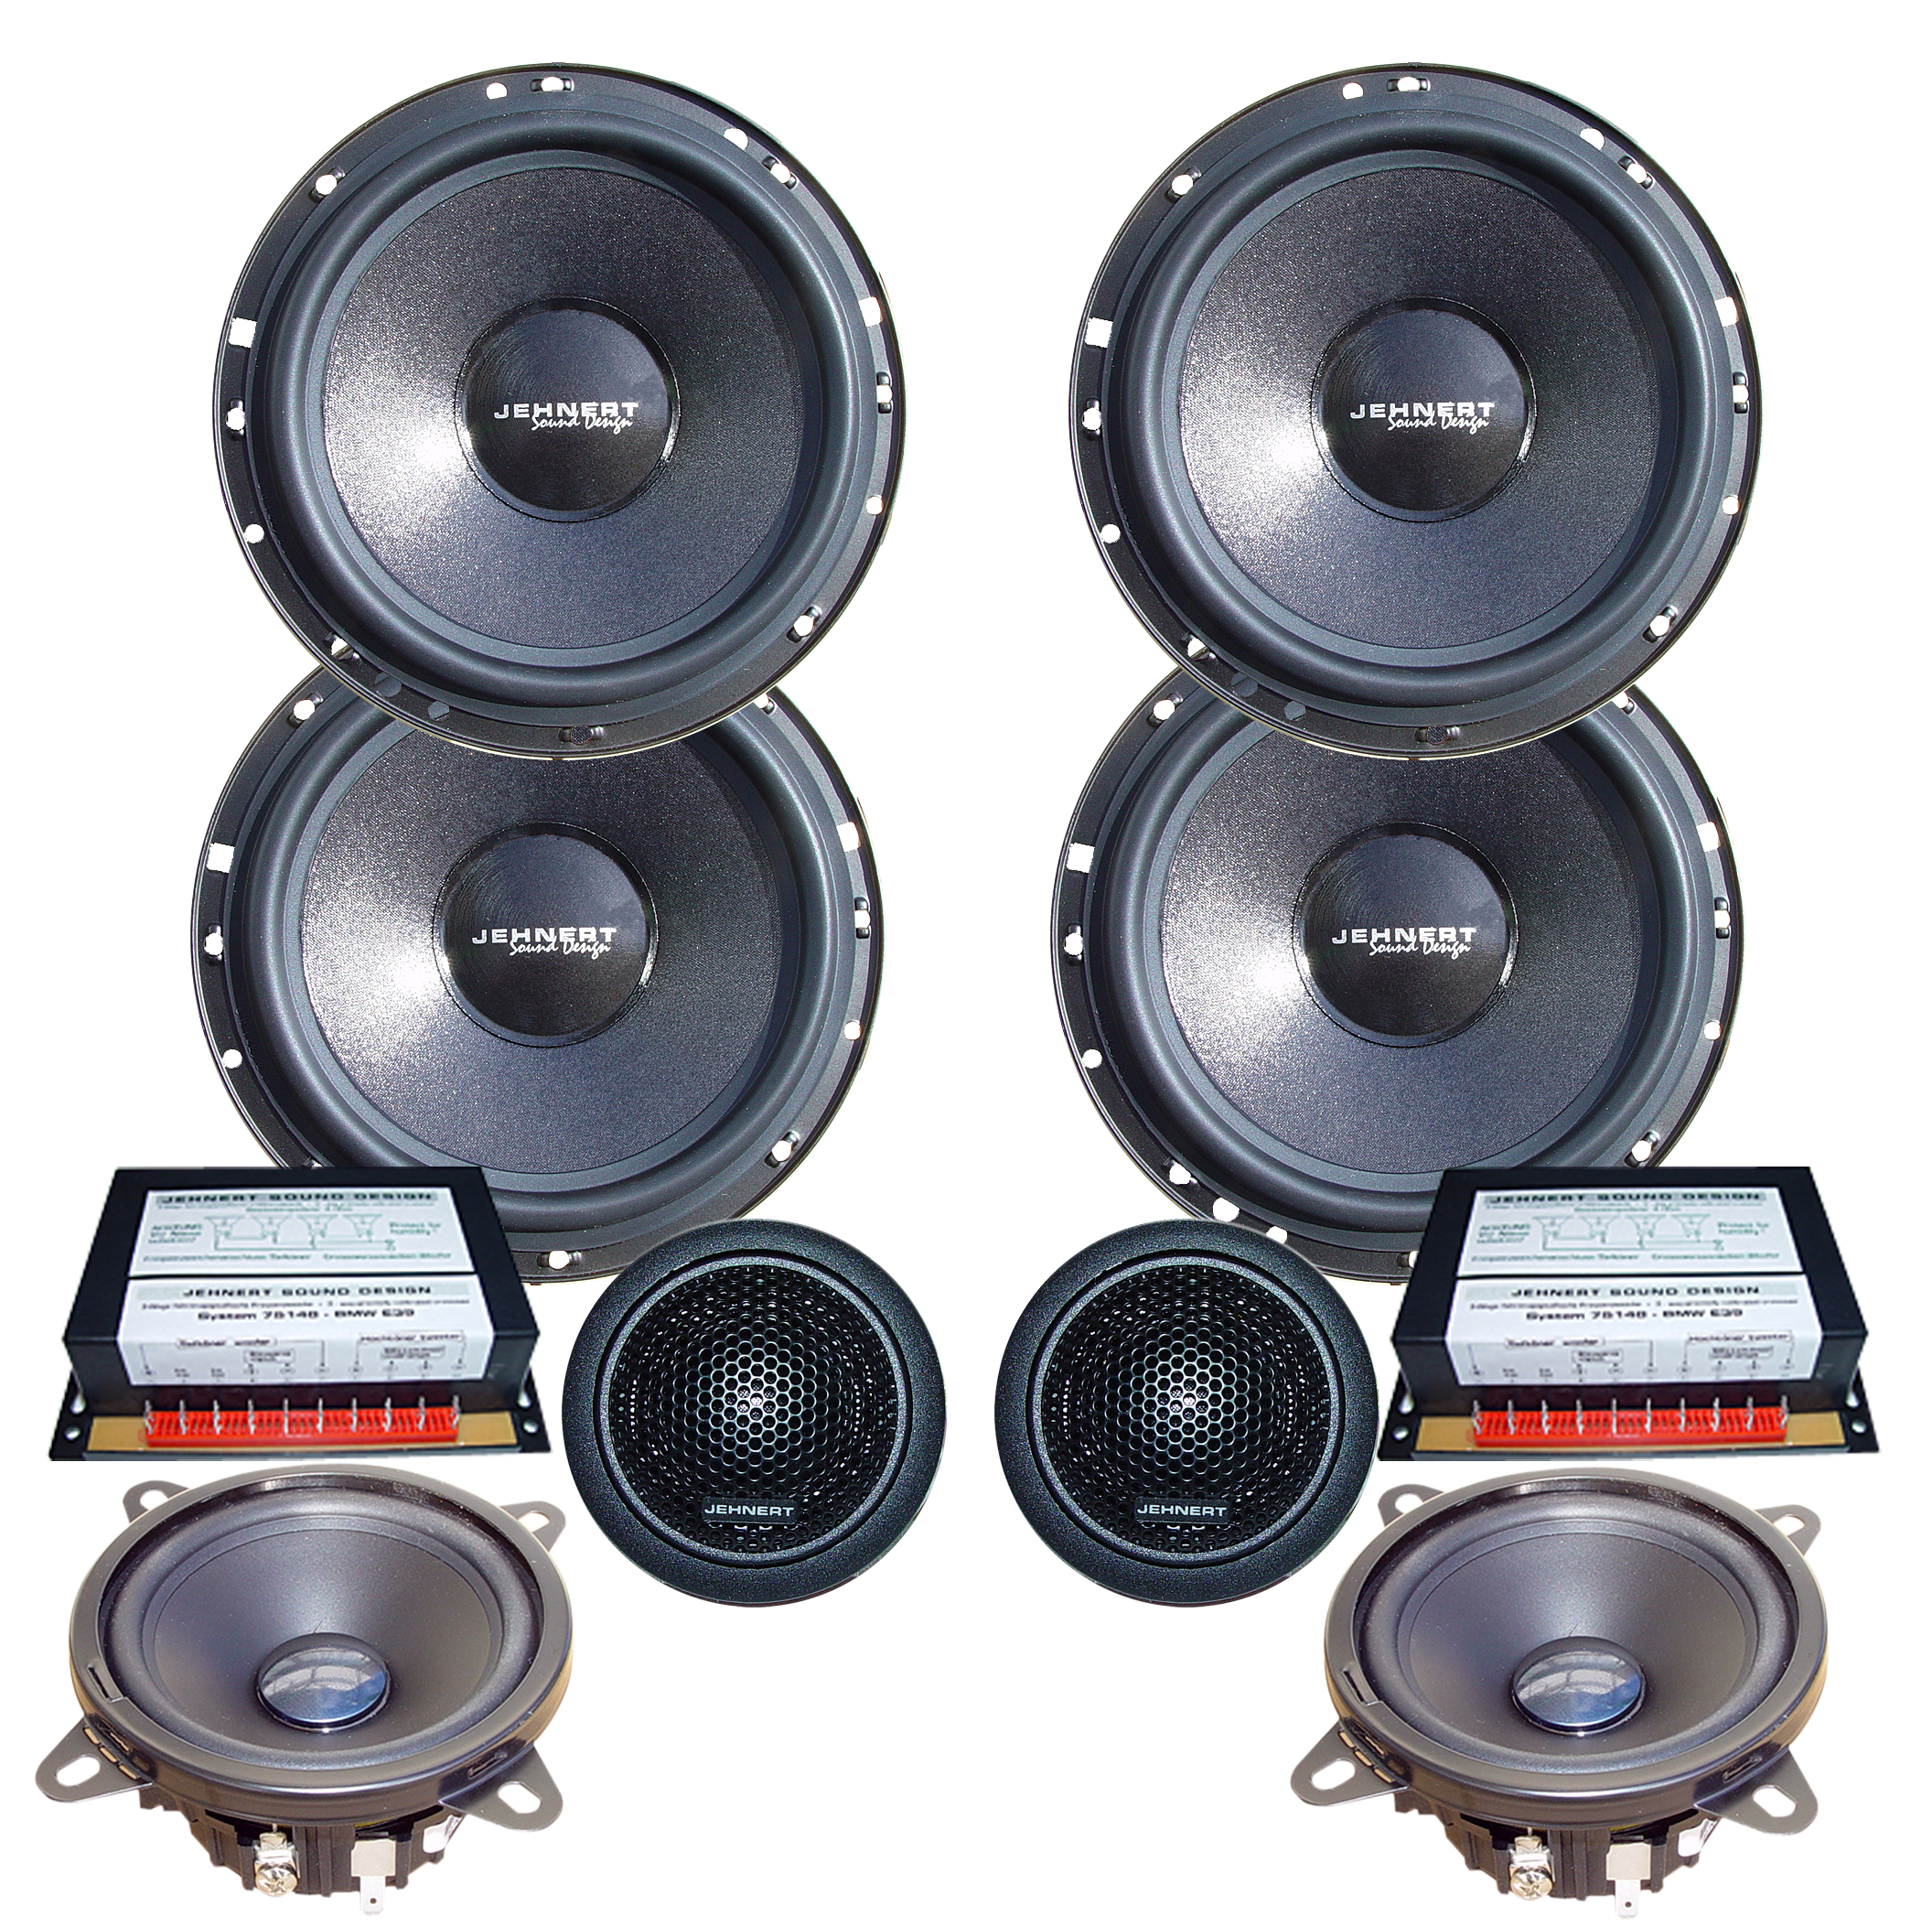 Mercedes c class w202 doorboards with 3 way soundsystem for Mercedes benz c300 sound system